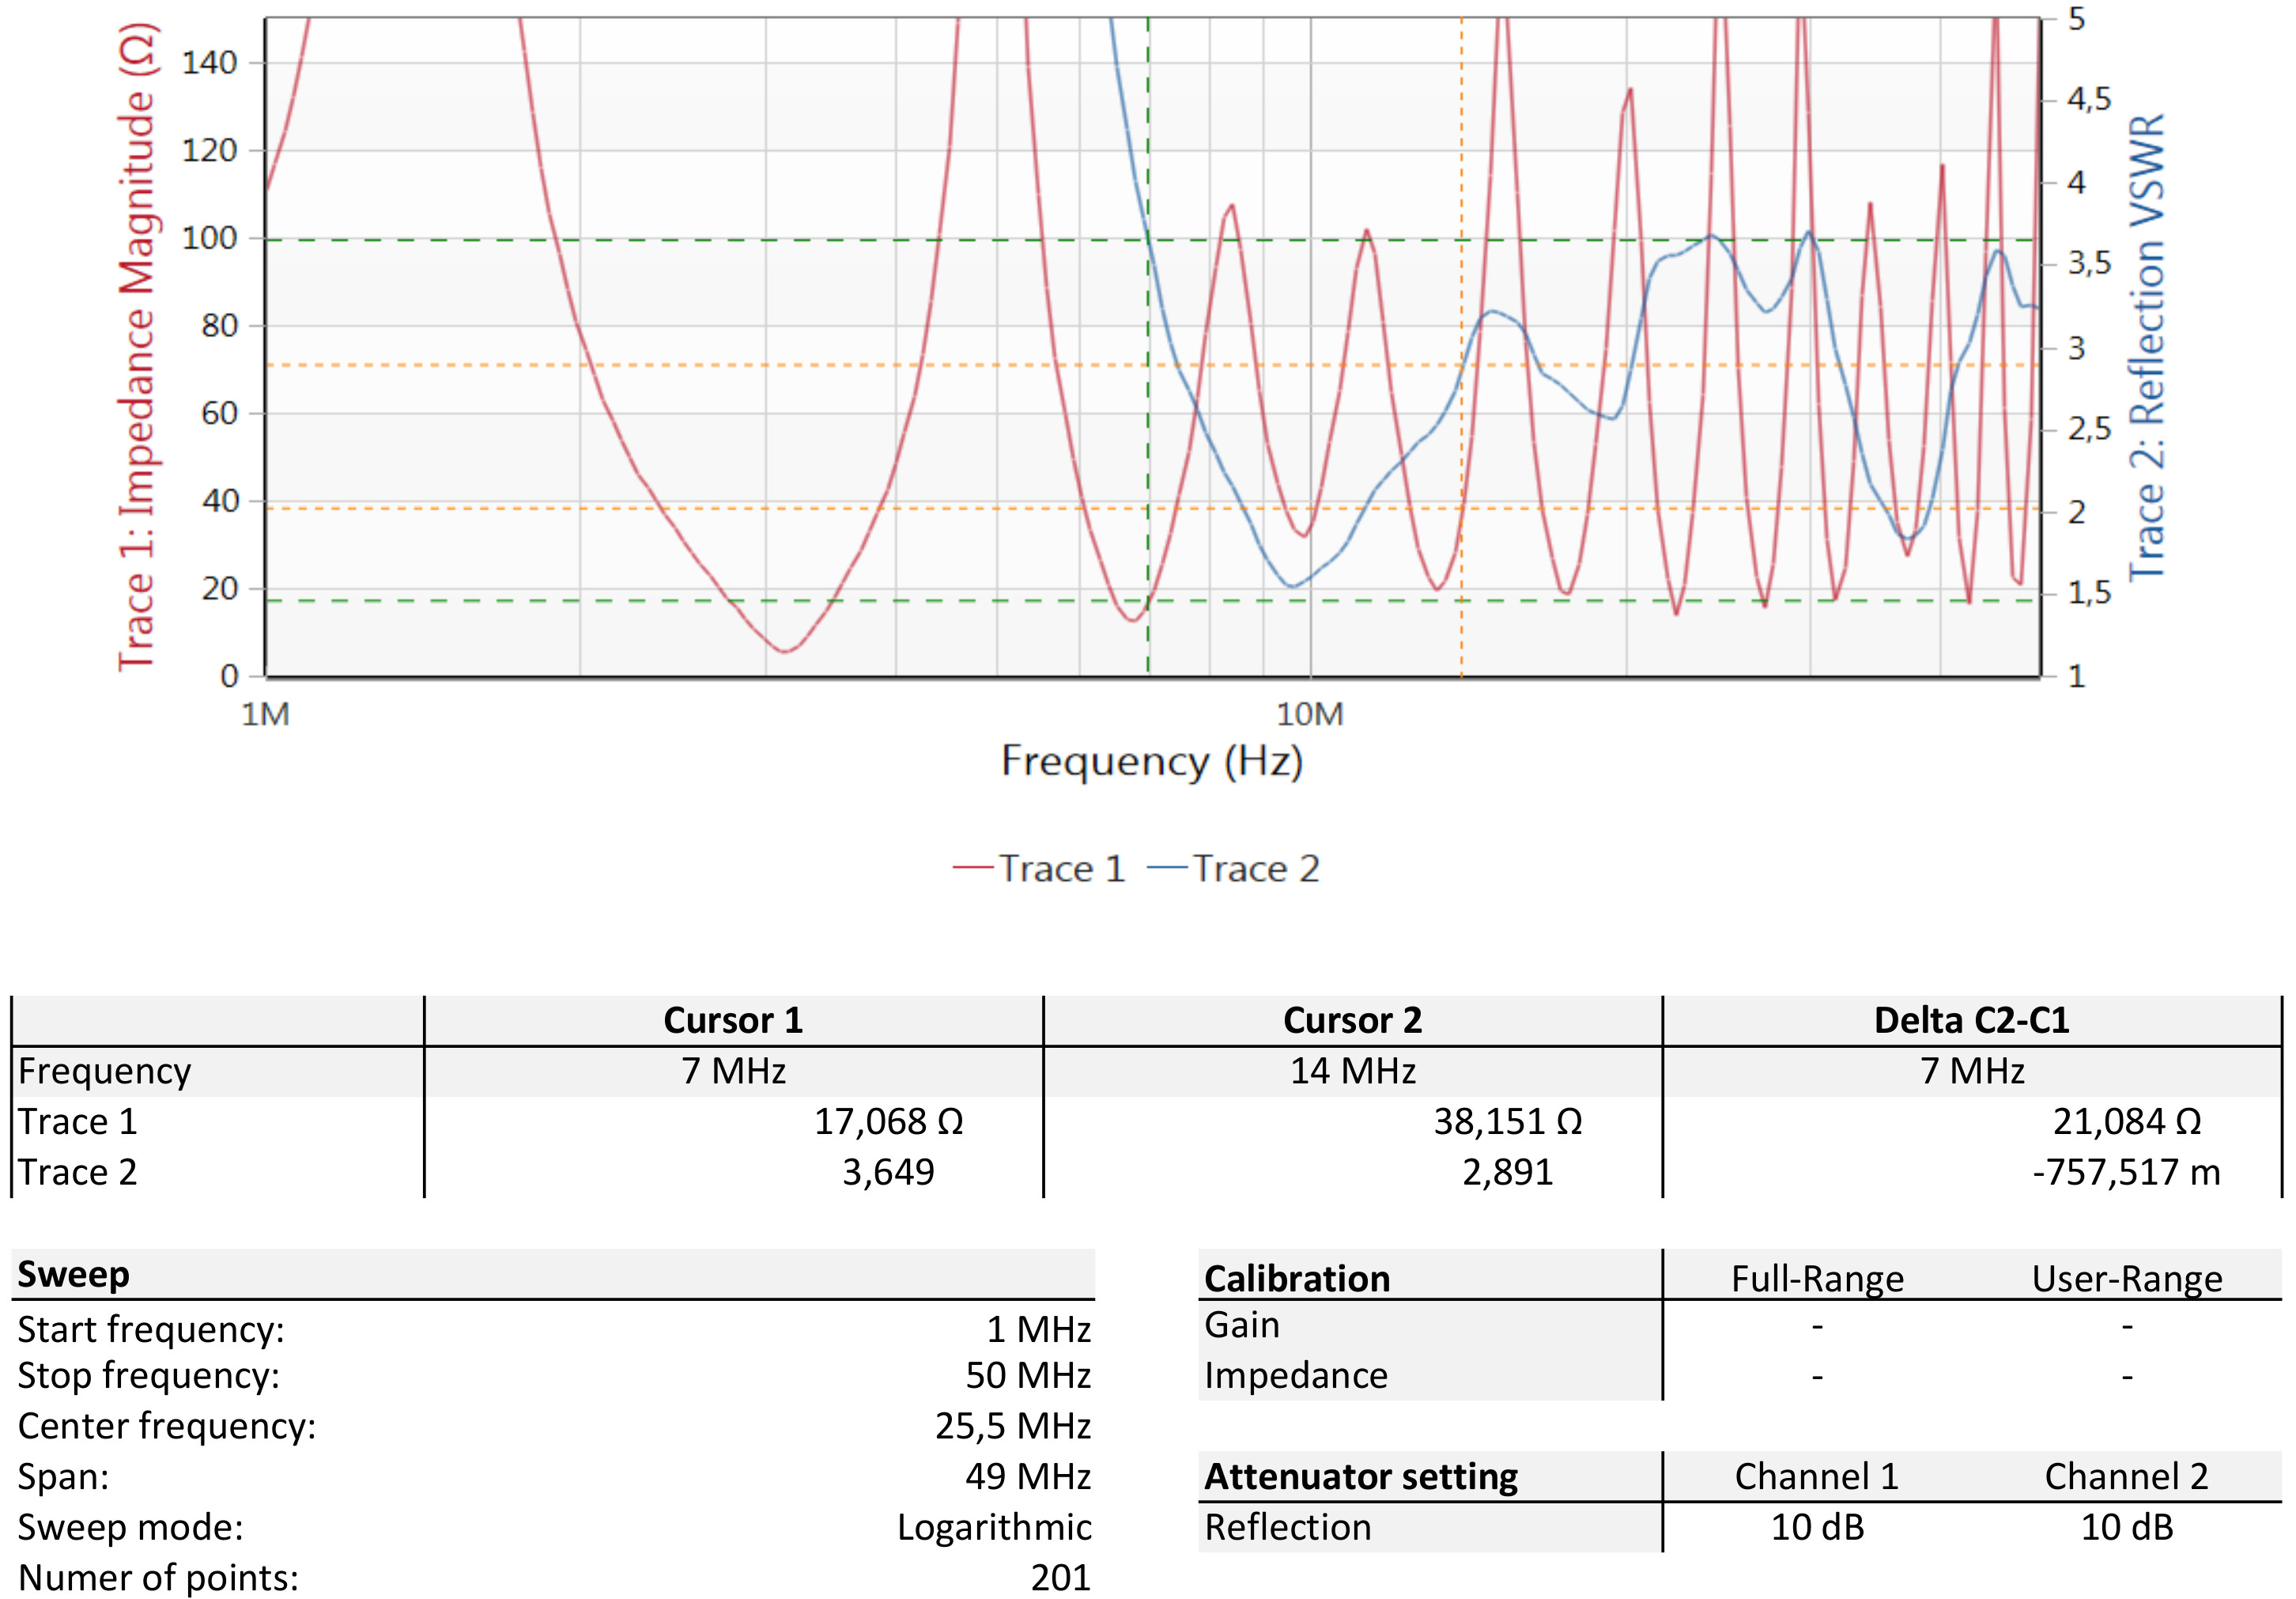 SWR and impedance: 1 MHz to 50 MHz